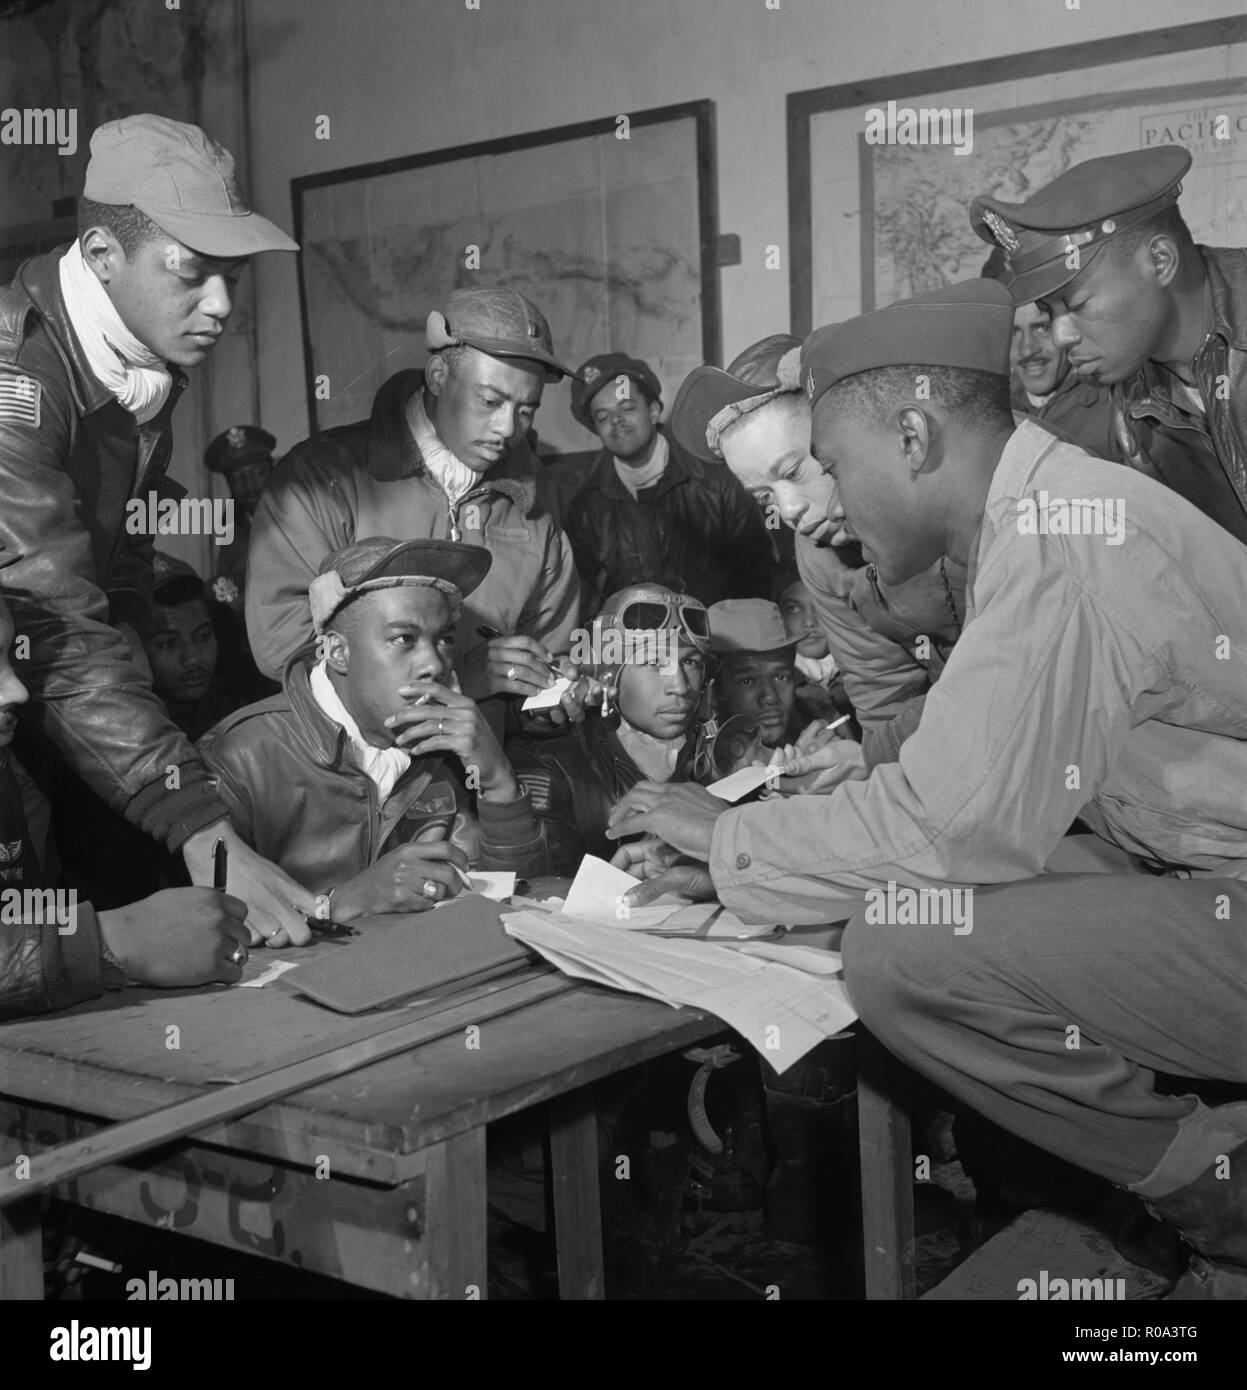 Group of Tuskegee Airmen, Ramitelli, Italy, Tony Frissell, March 1945 - Stock Image